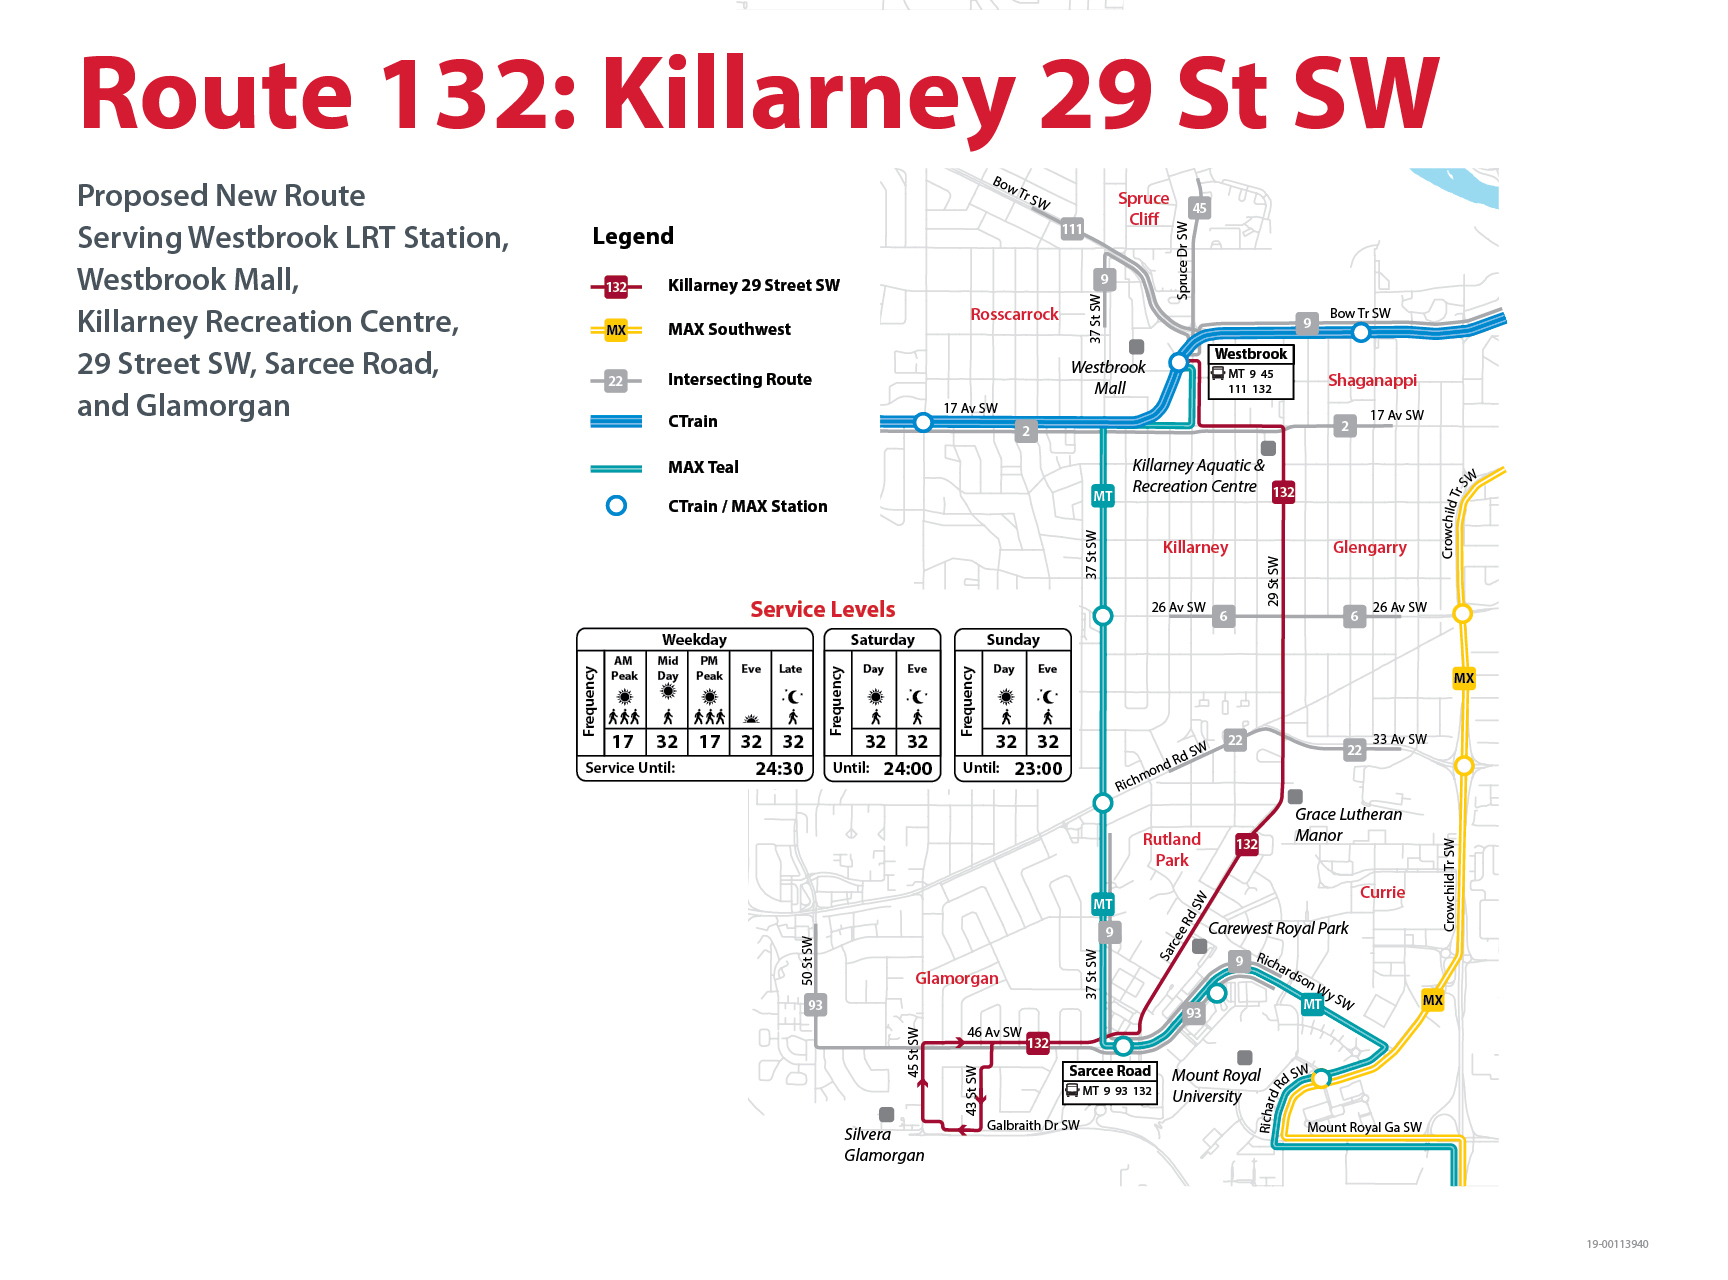 Proposed Changes to Route 132